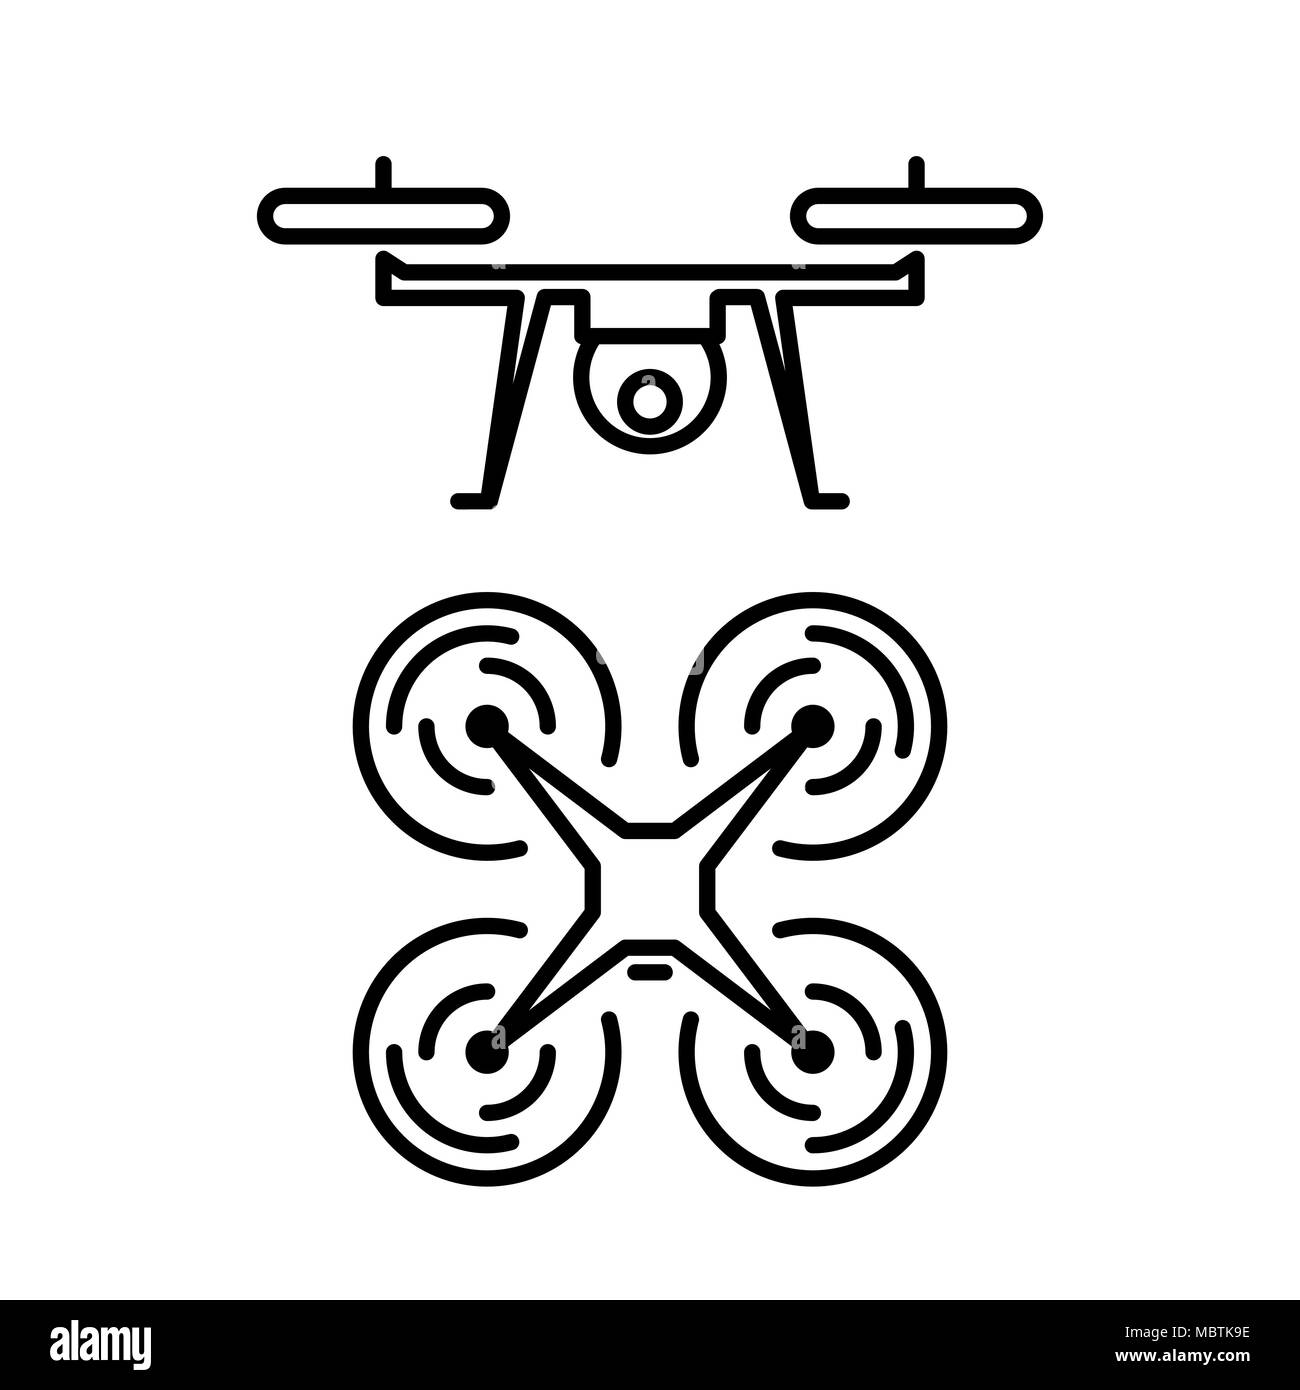 Air drone icon simple flat vector illustration. - Stock Vector